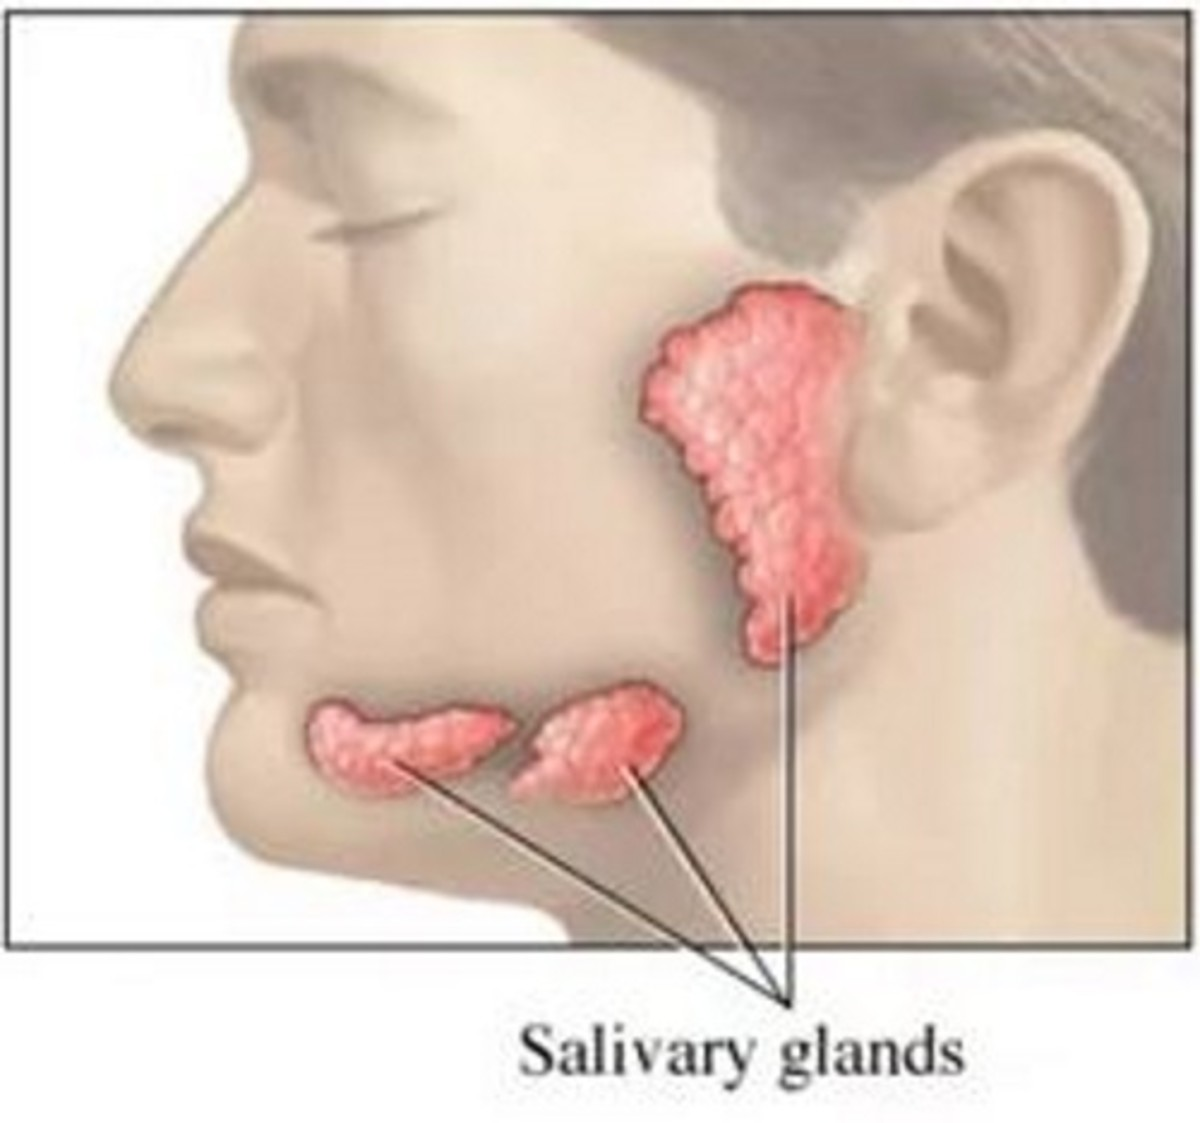 Salivary Glands are Important to Oral Health